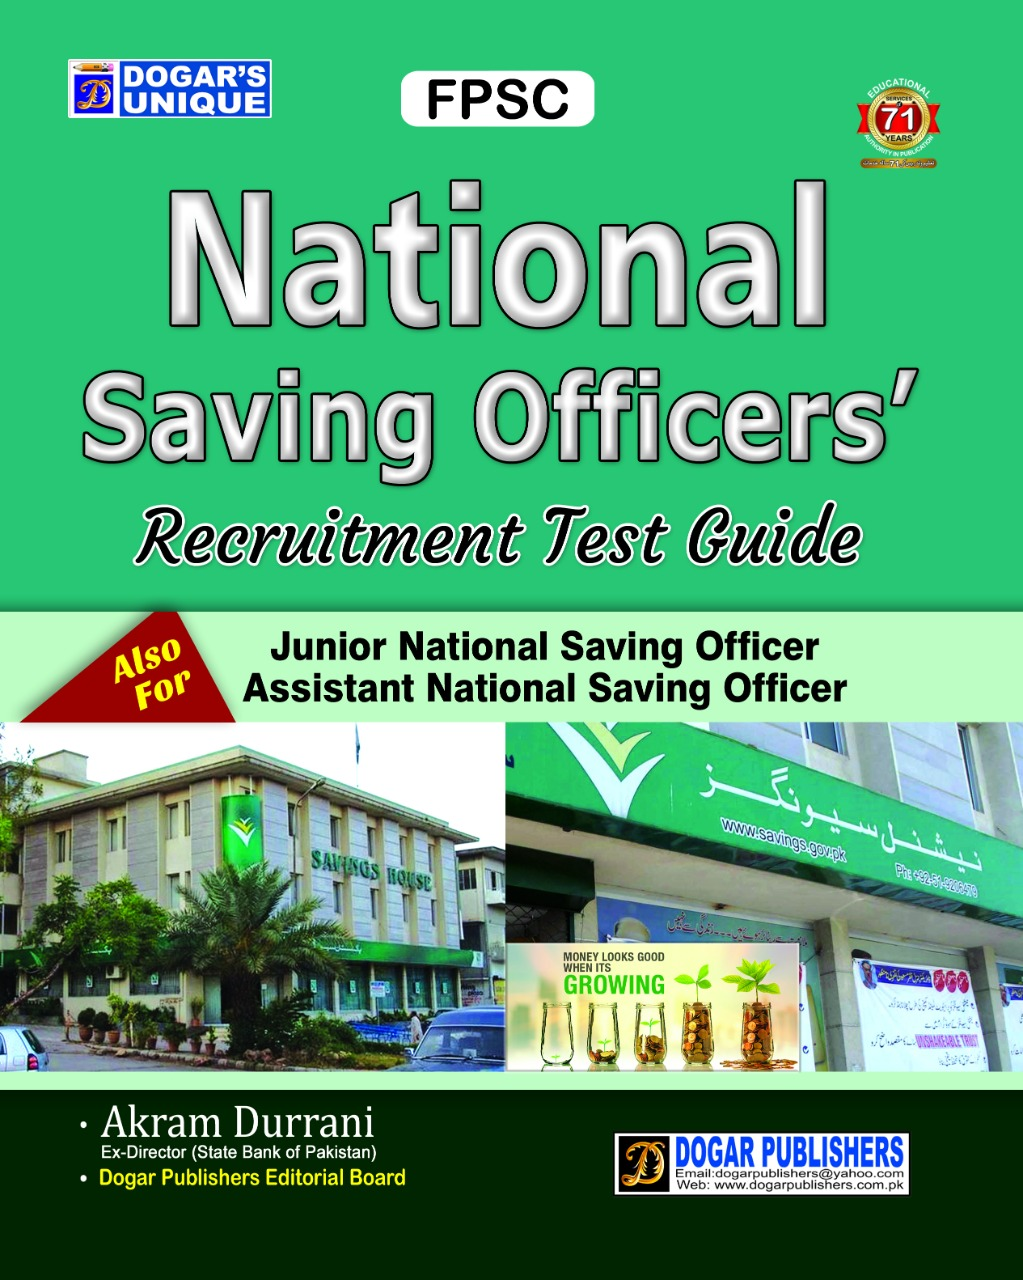 FPSC National Saving officers